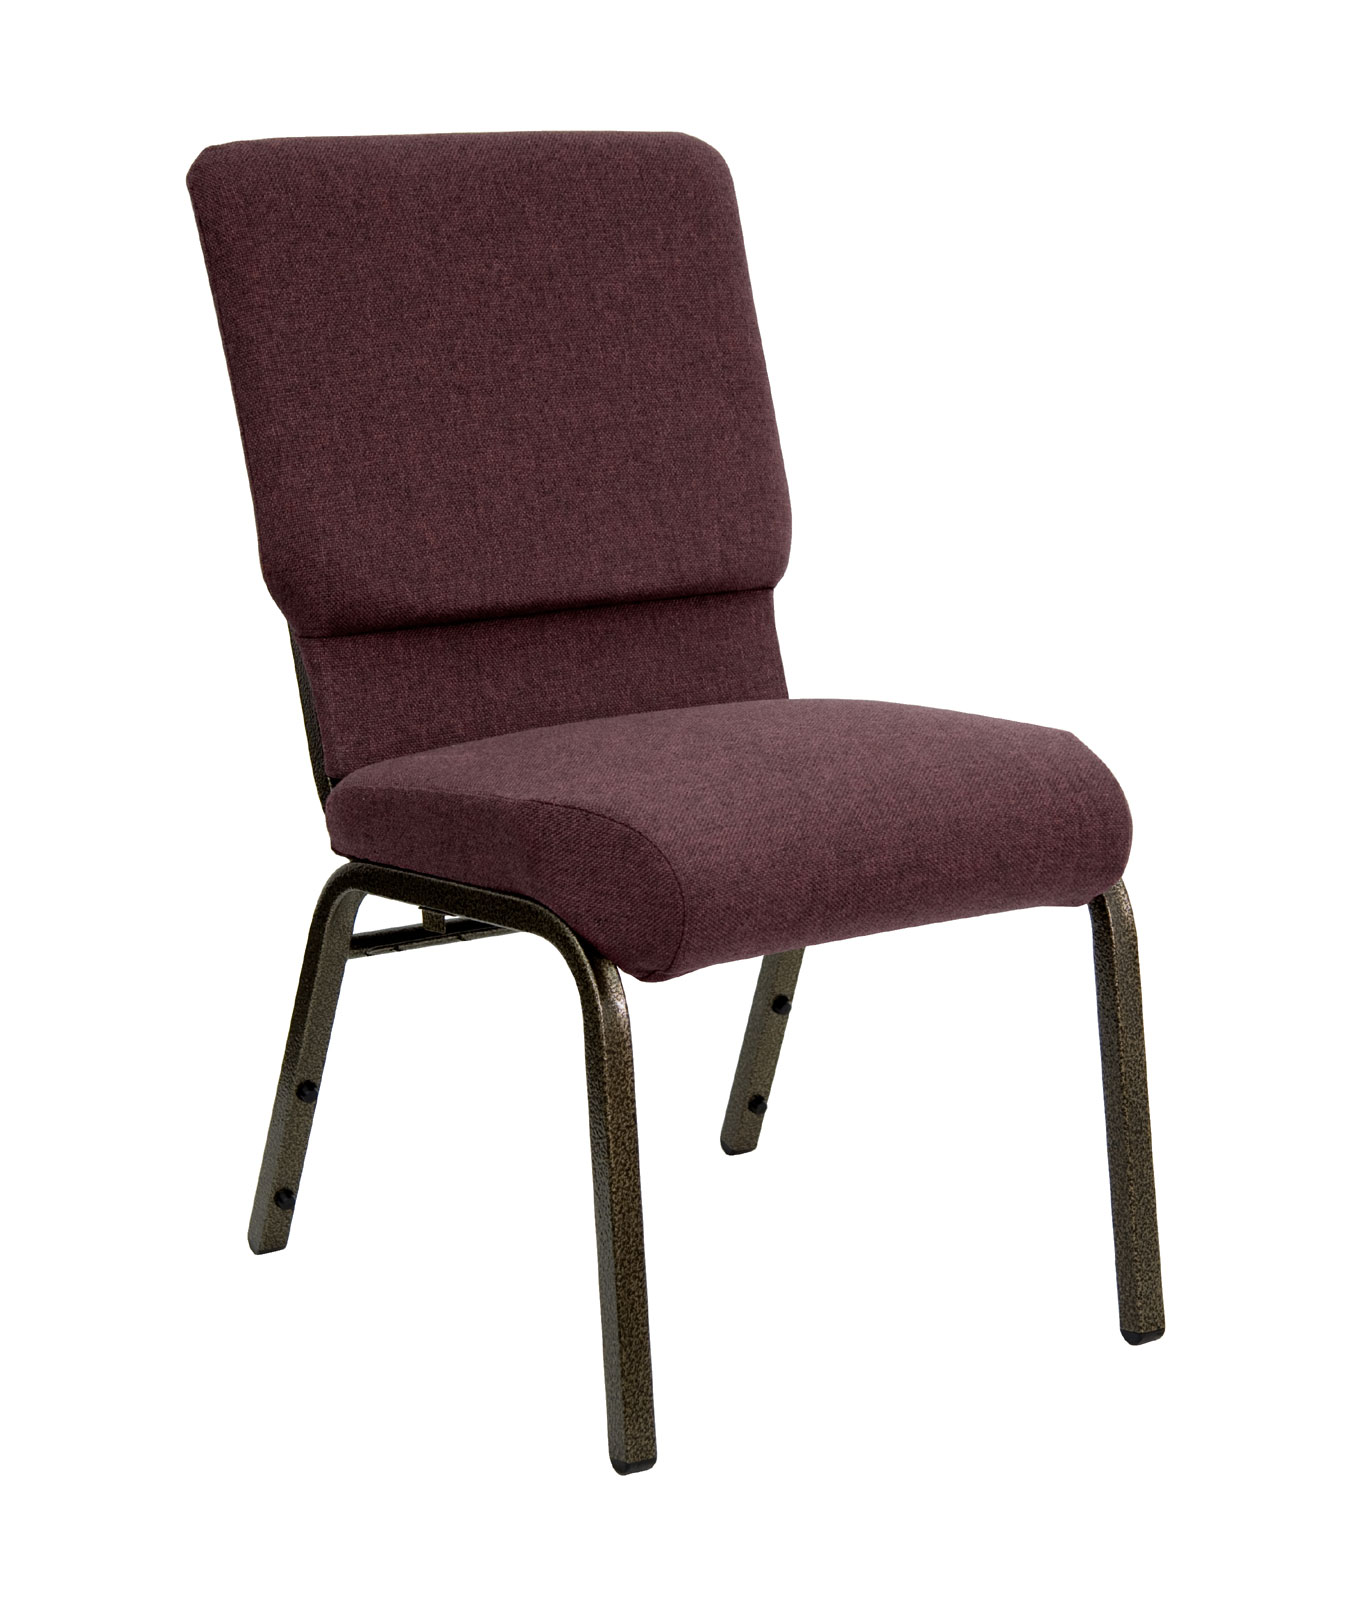 18 5 Inch Wide Stacking HERCULES Series Fabric Church Chair by